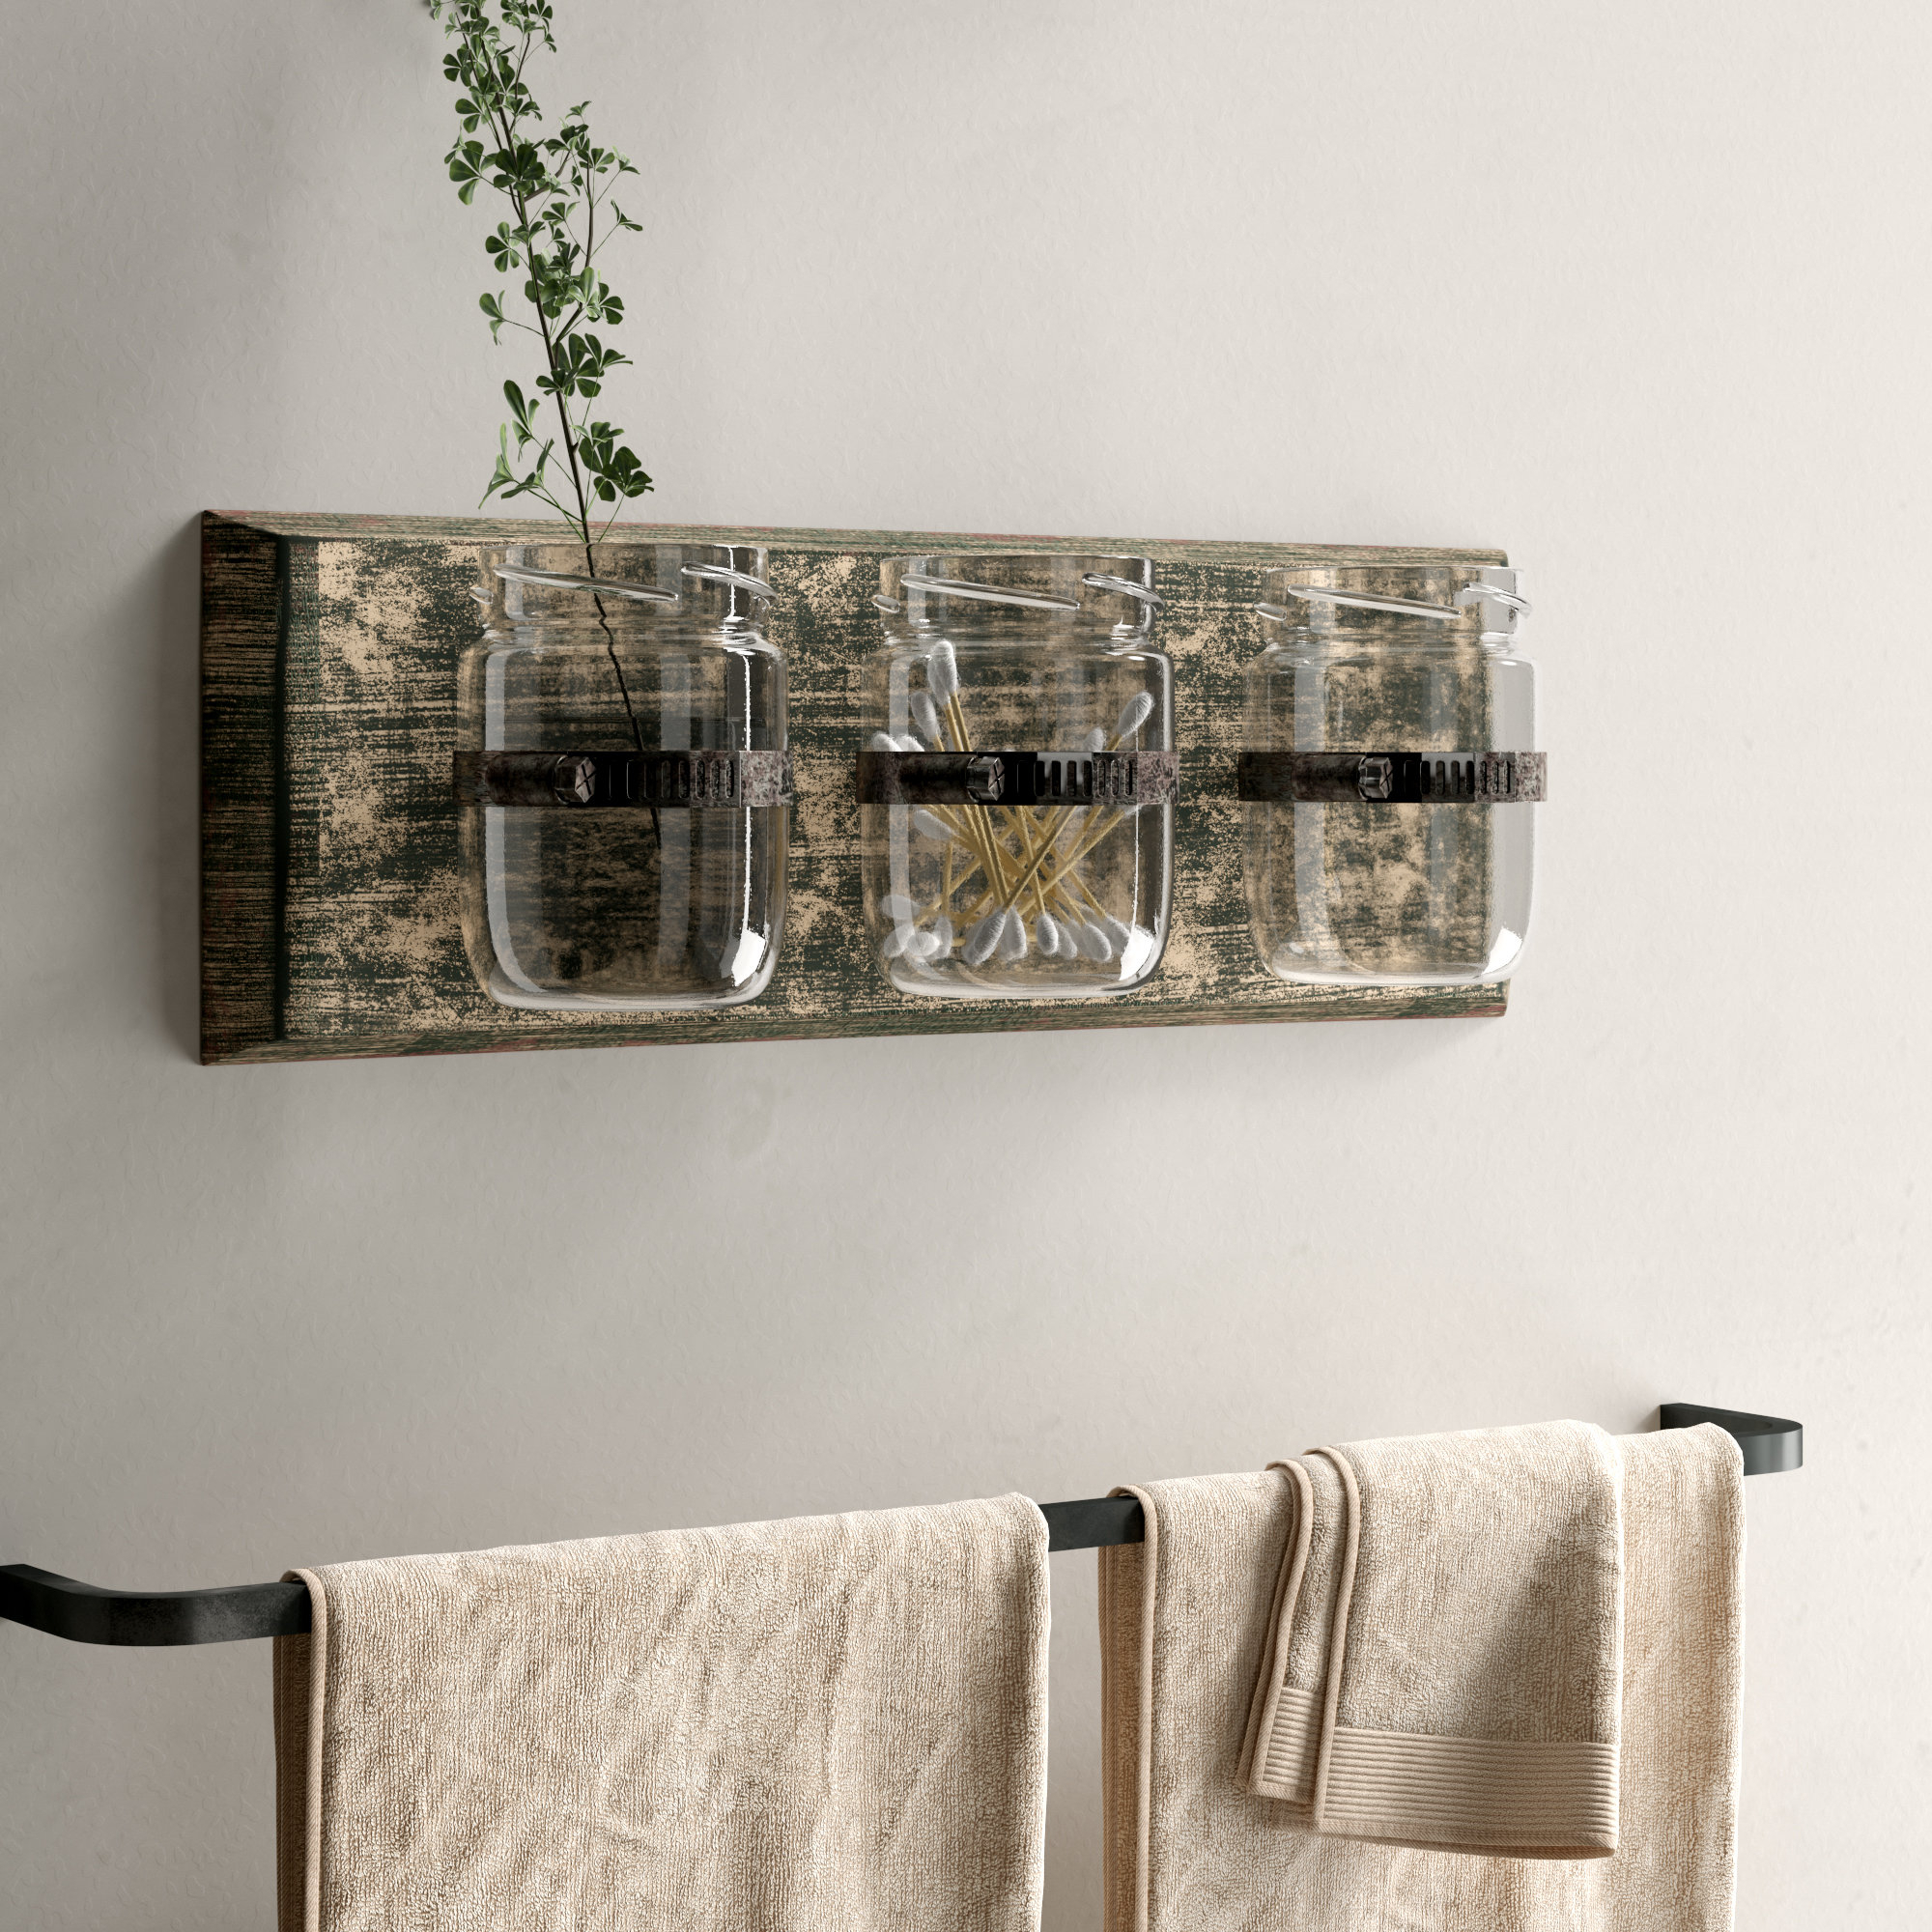 Three Glass Holder Wall Decor Inside Famous Laurel Foundry Modern Farmhouse Three Glass Holder Wall Décor (Gallery 1 of 20)